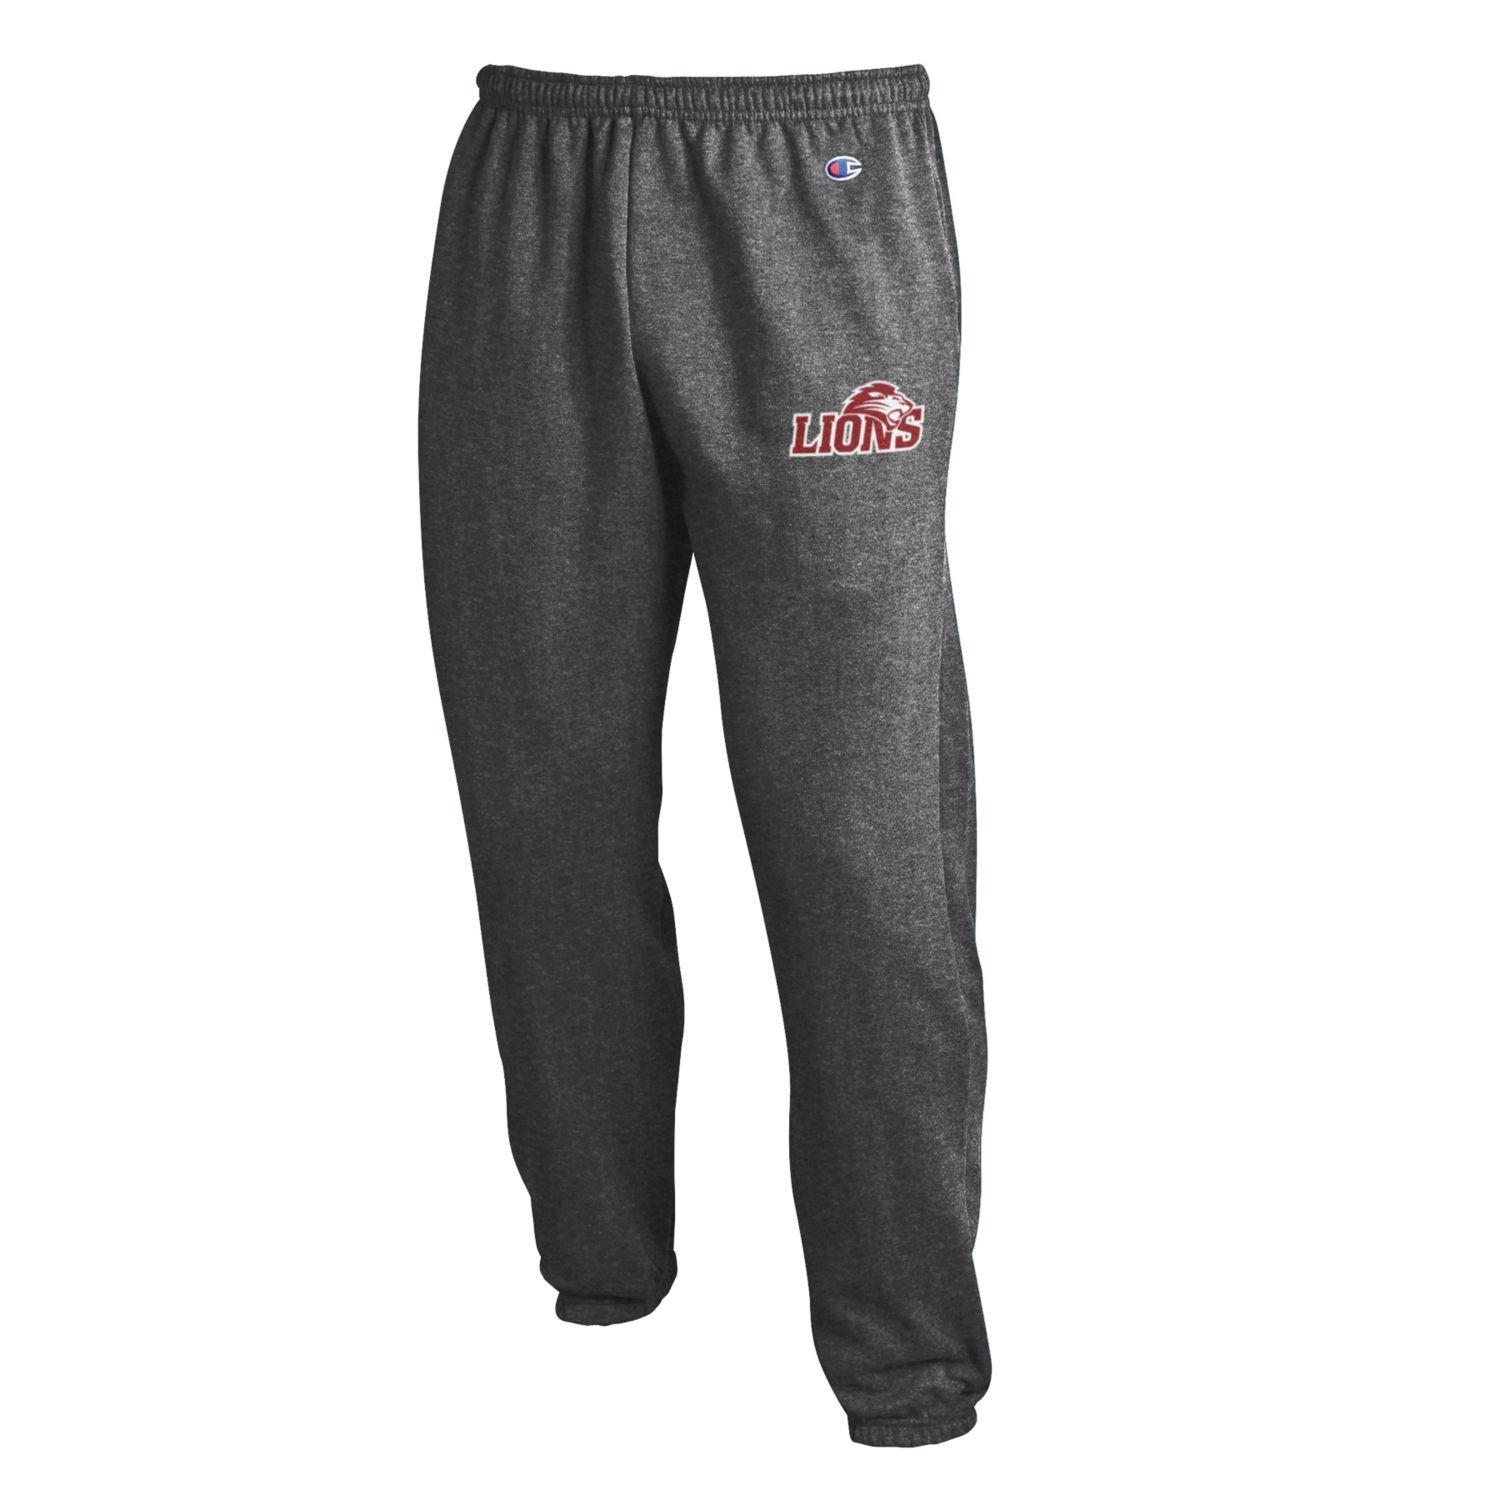 Lions Banded Sweatpants